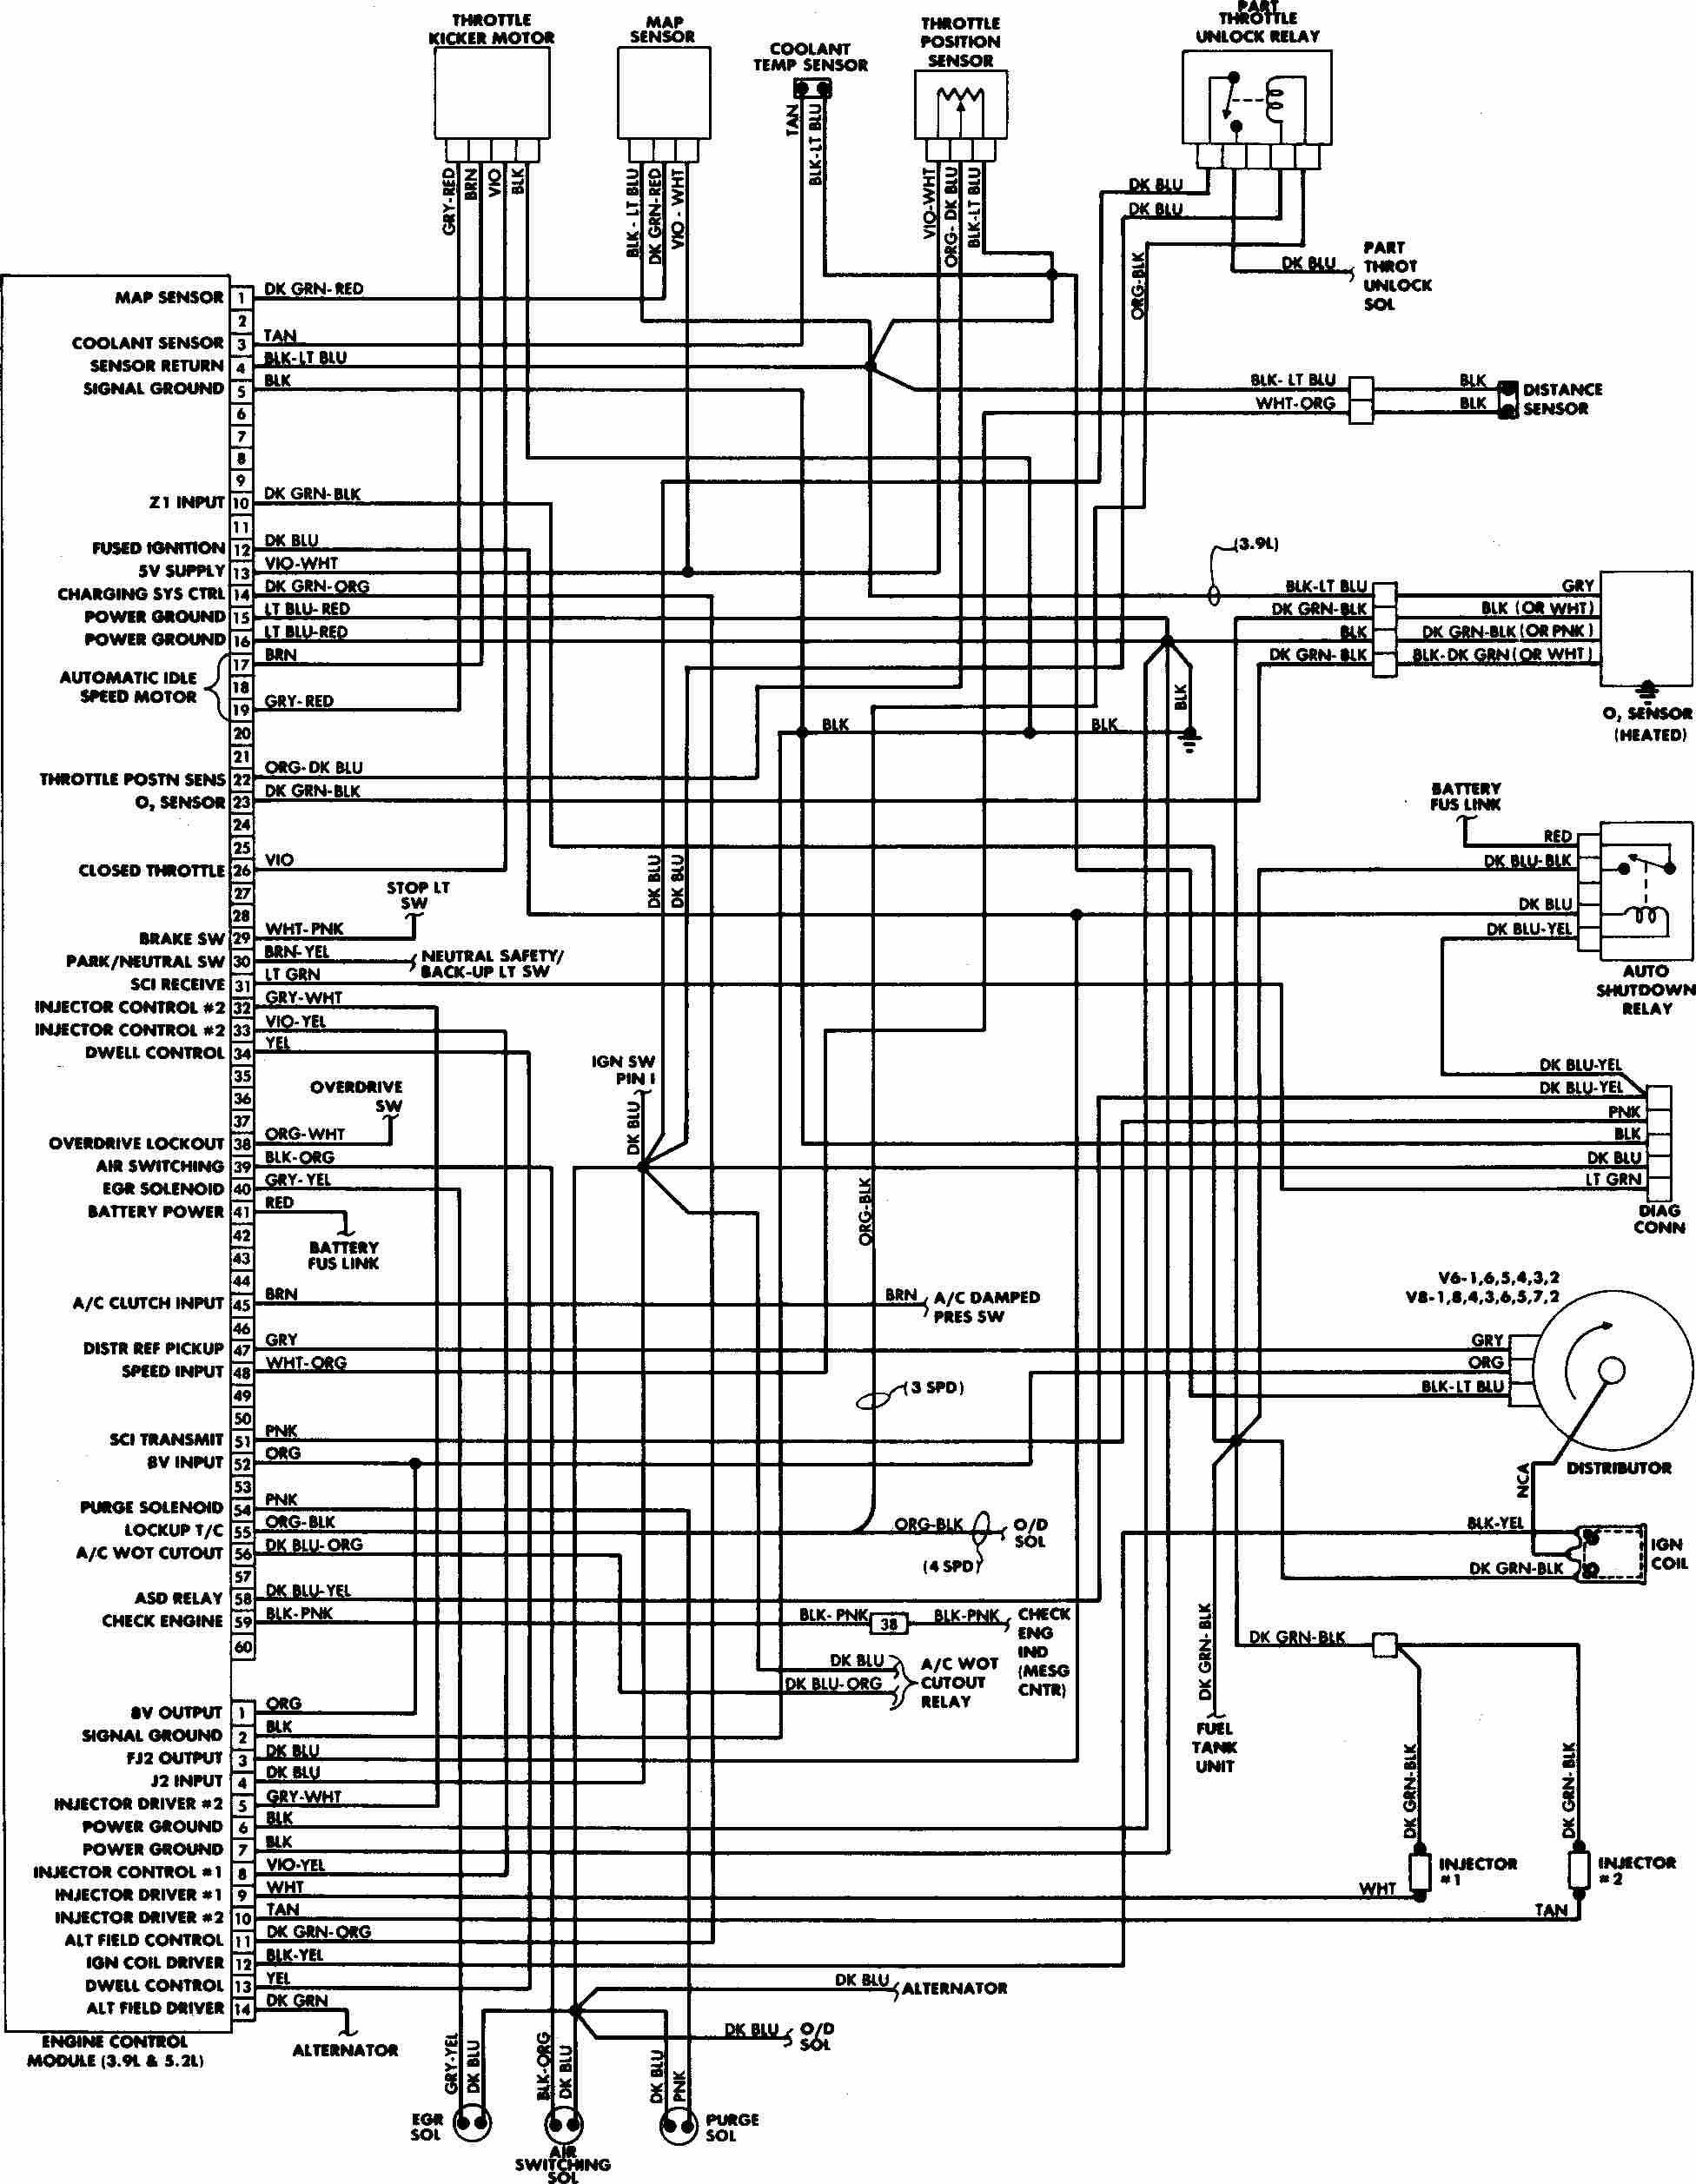 Unique Car Neon Wiring Diagram Diagram Diagramtemplate